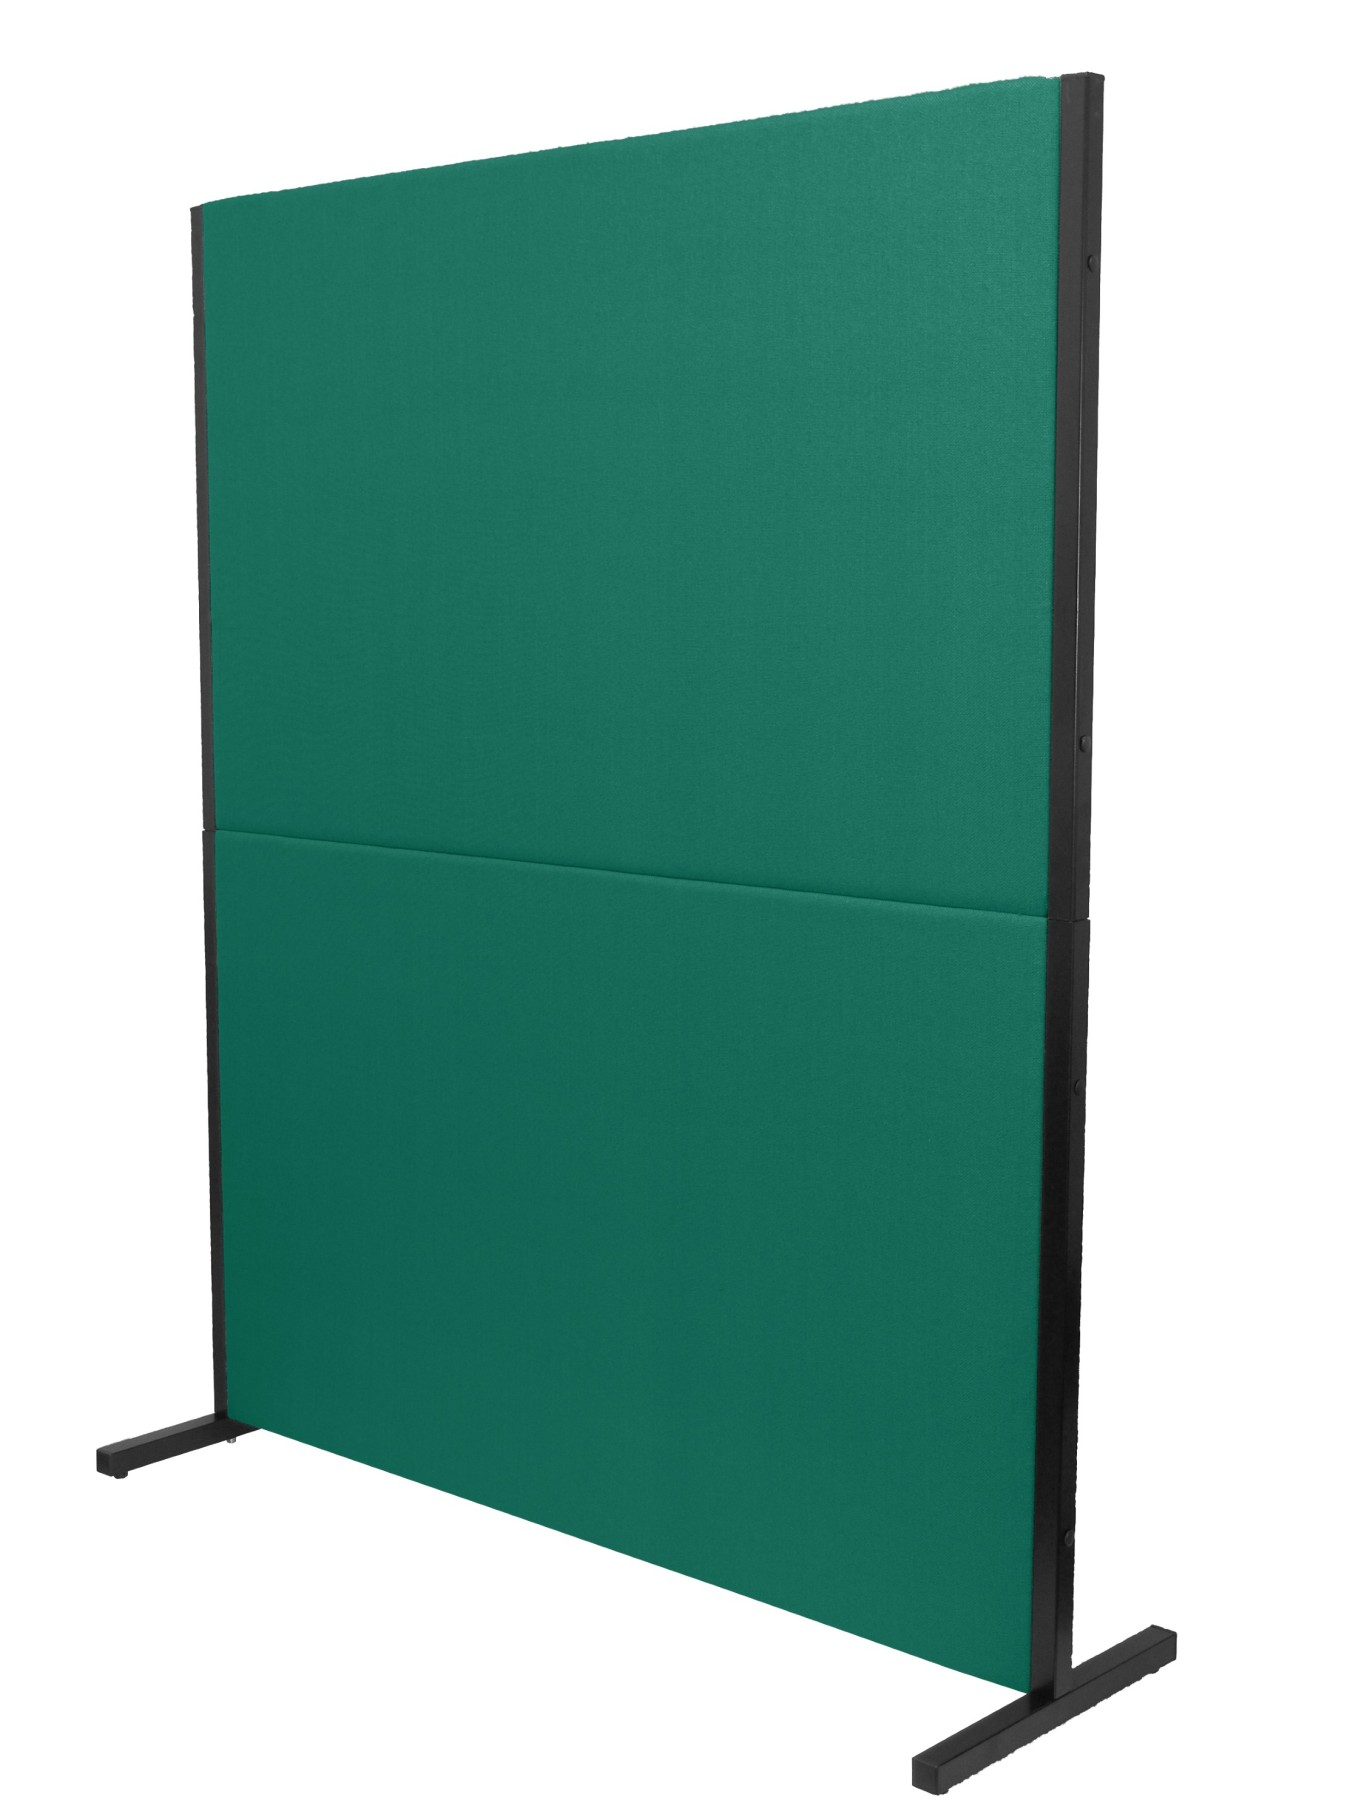 Folding Screen Separator For Offices And Working Centers, Detachable And With Black Color Structure Upholstered In Tissue BAL